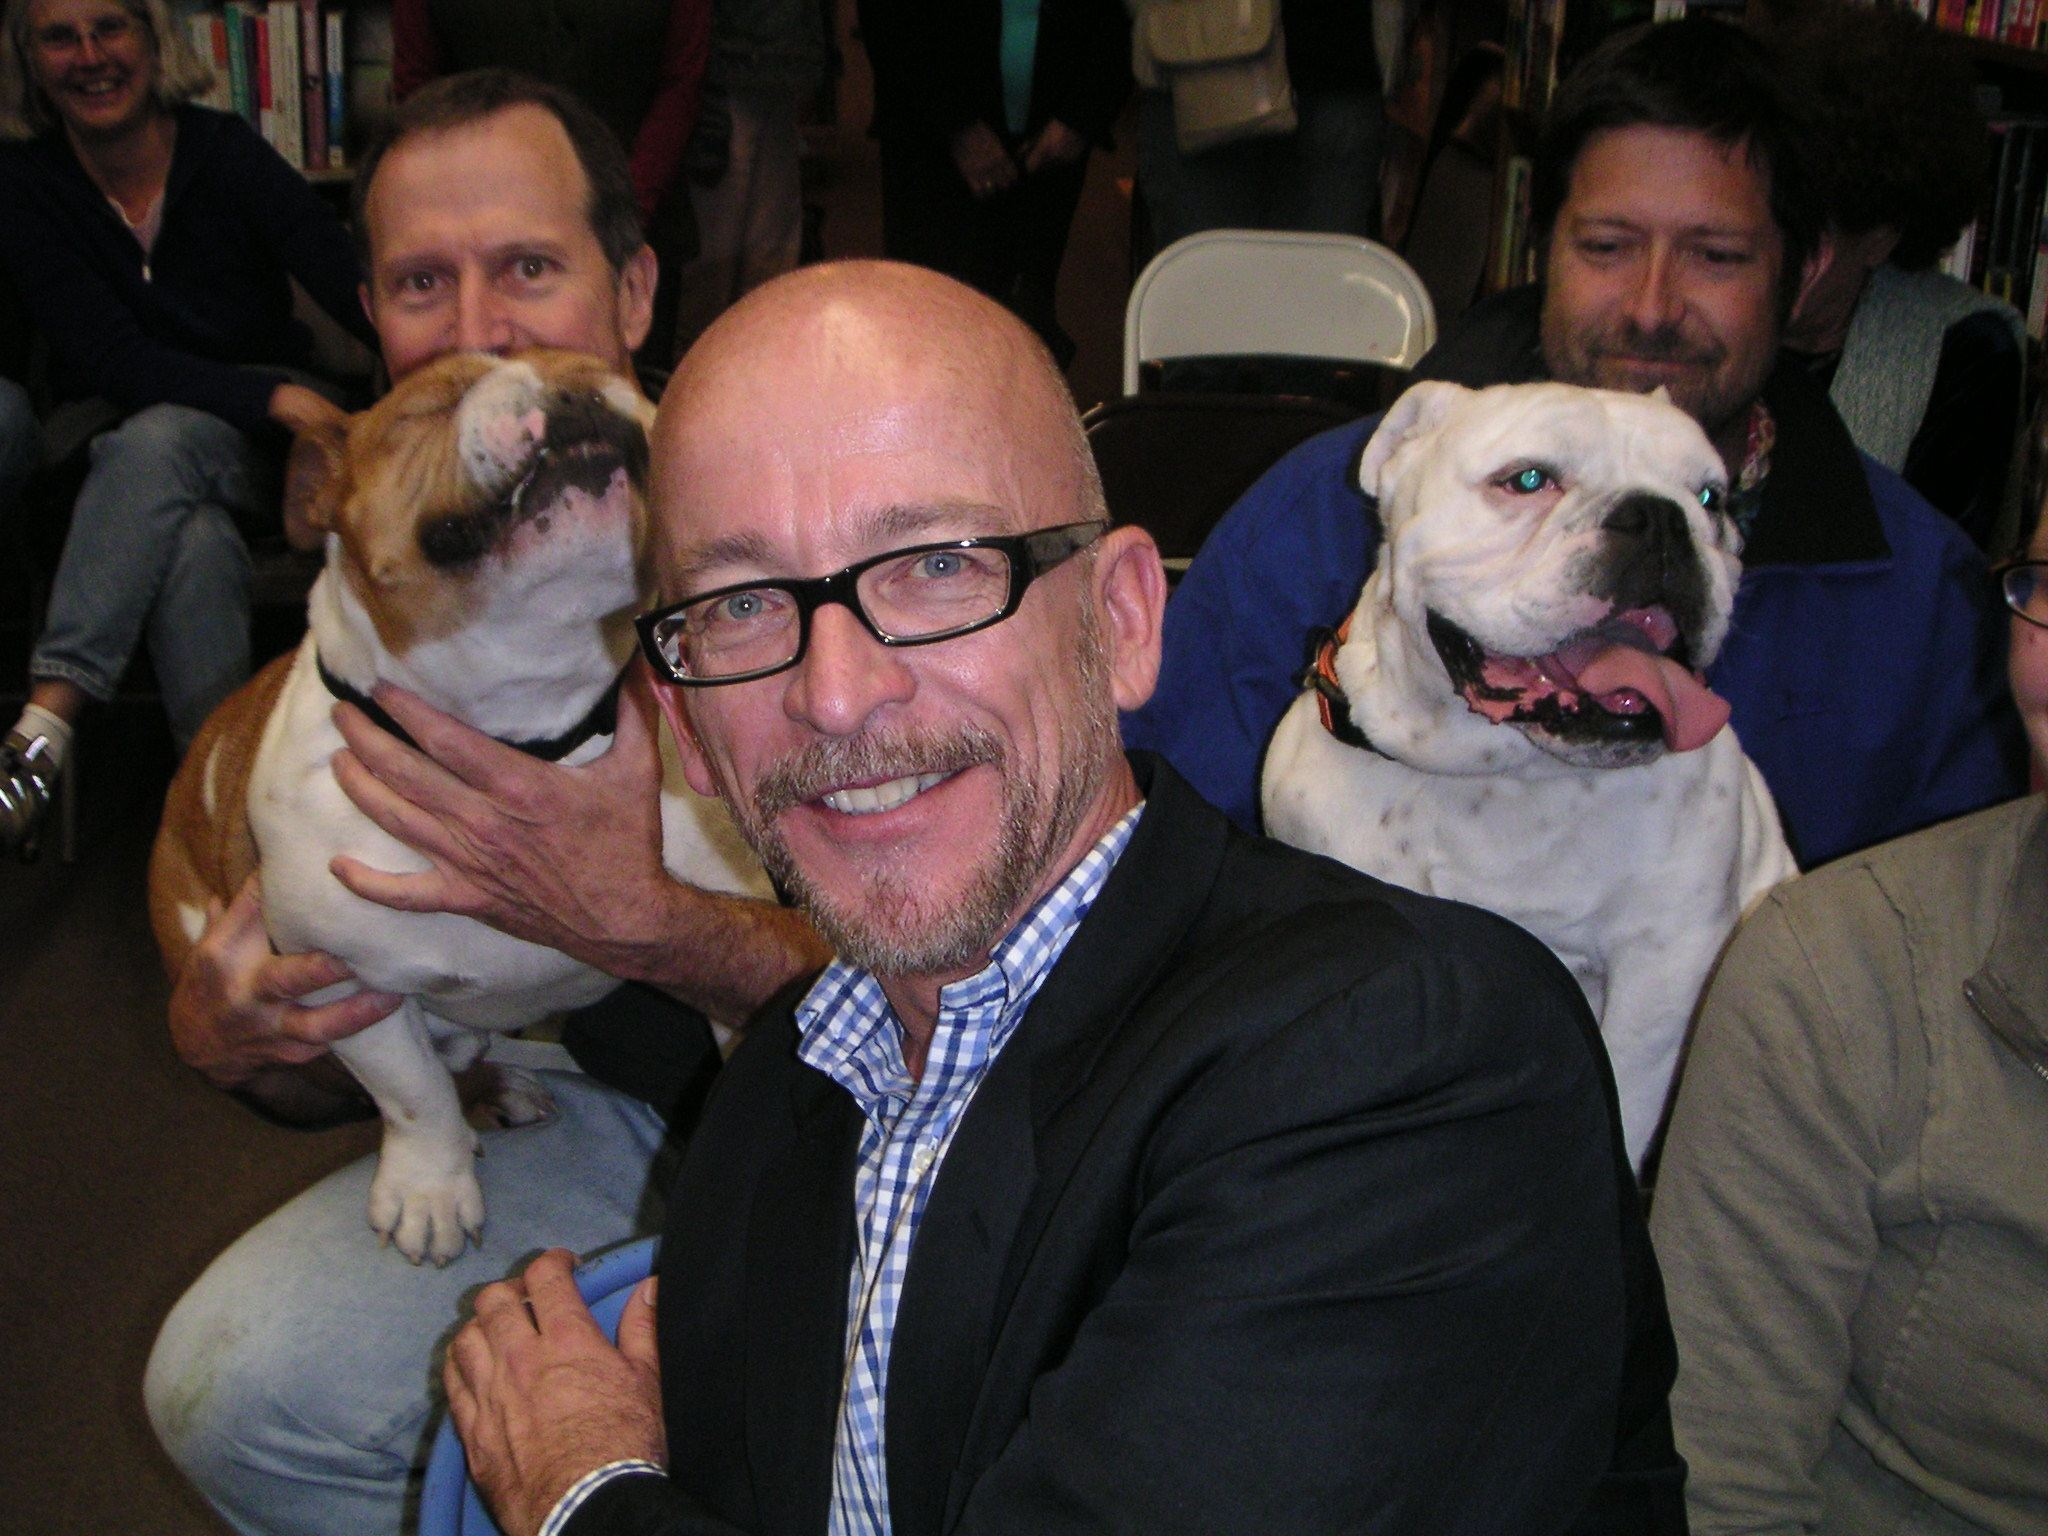 Mark Doty at Readers Books in Sonoma, California in 2007